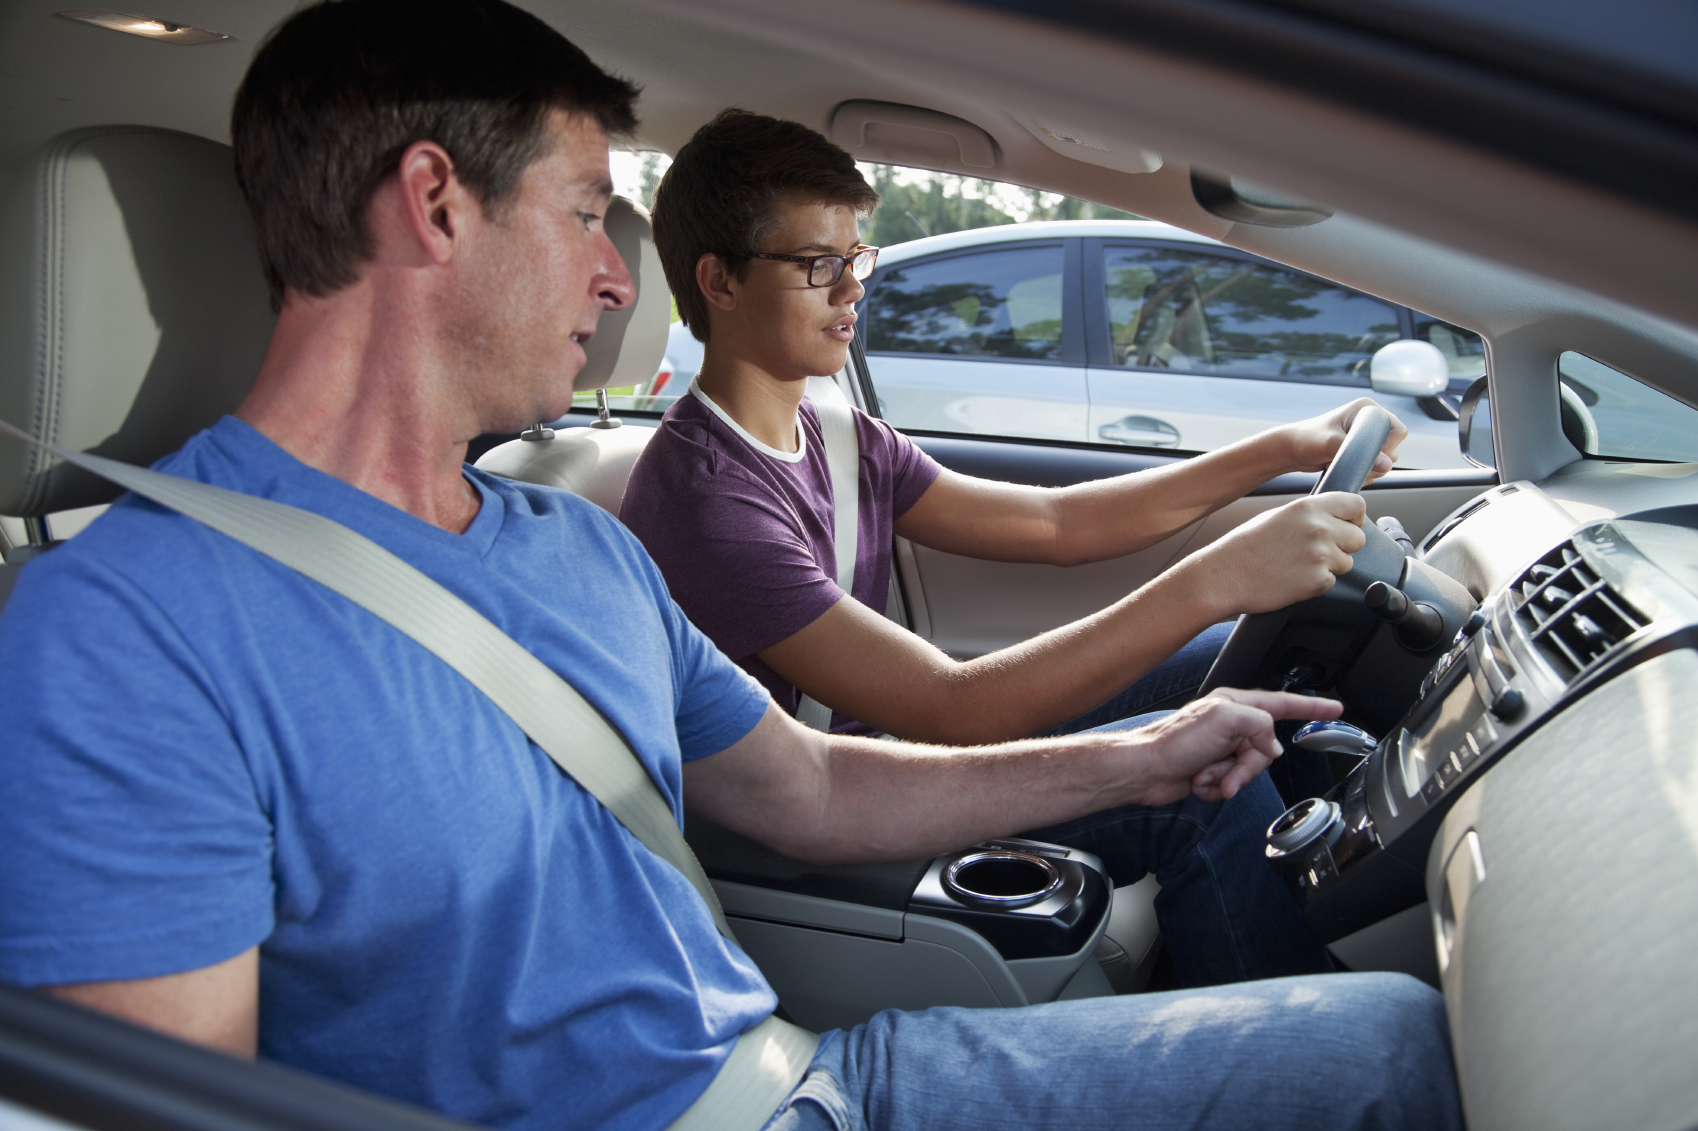 How You Can Pass Your Driving Test in Just 7 Days